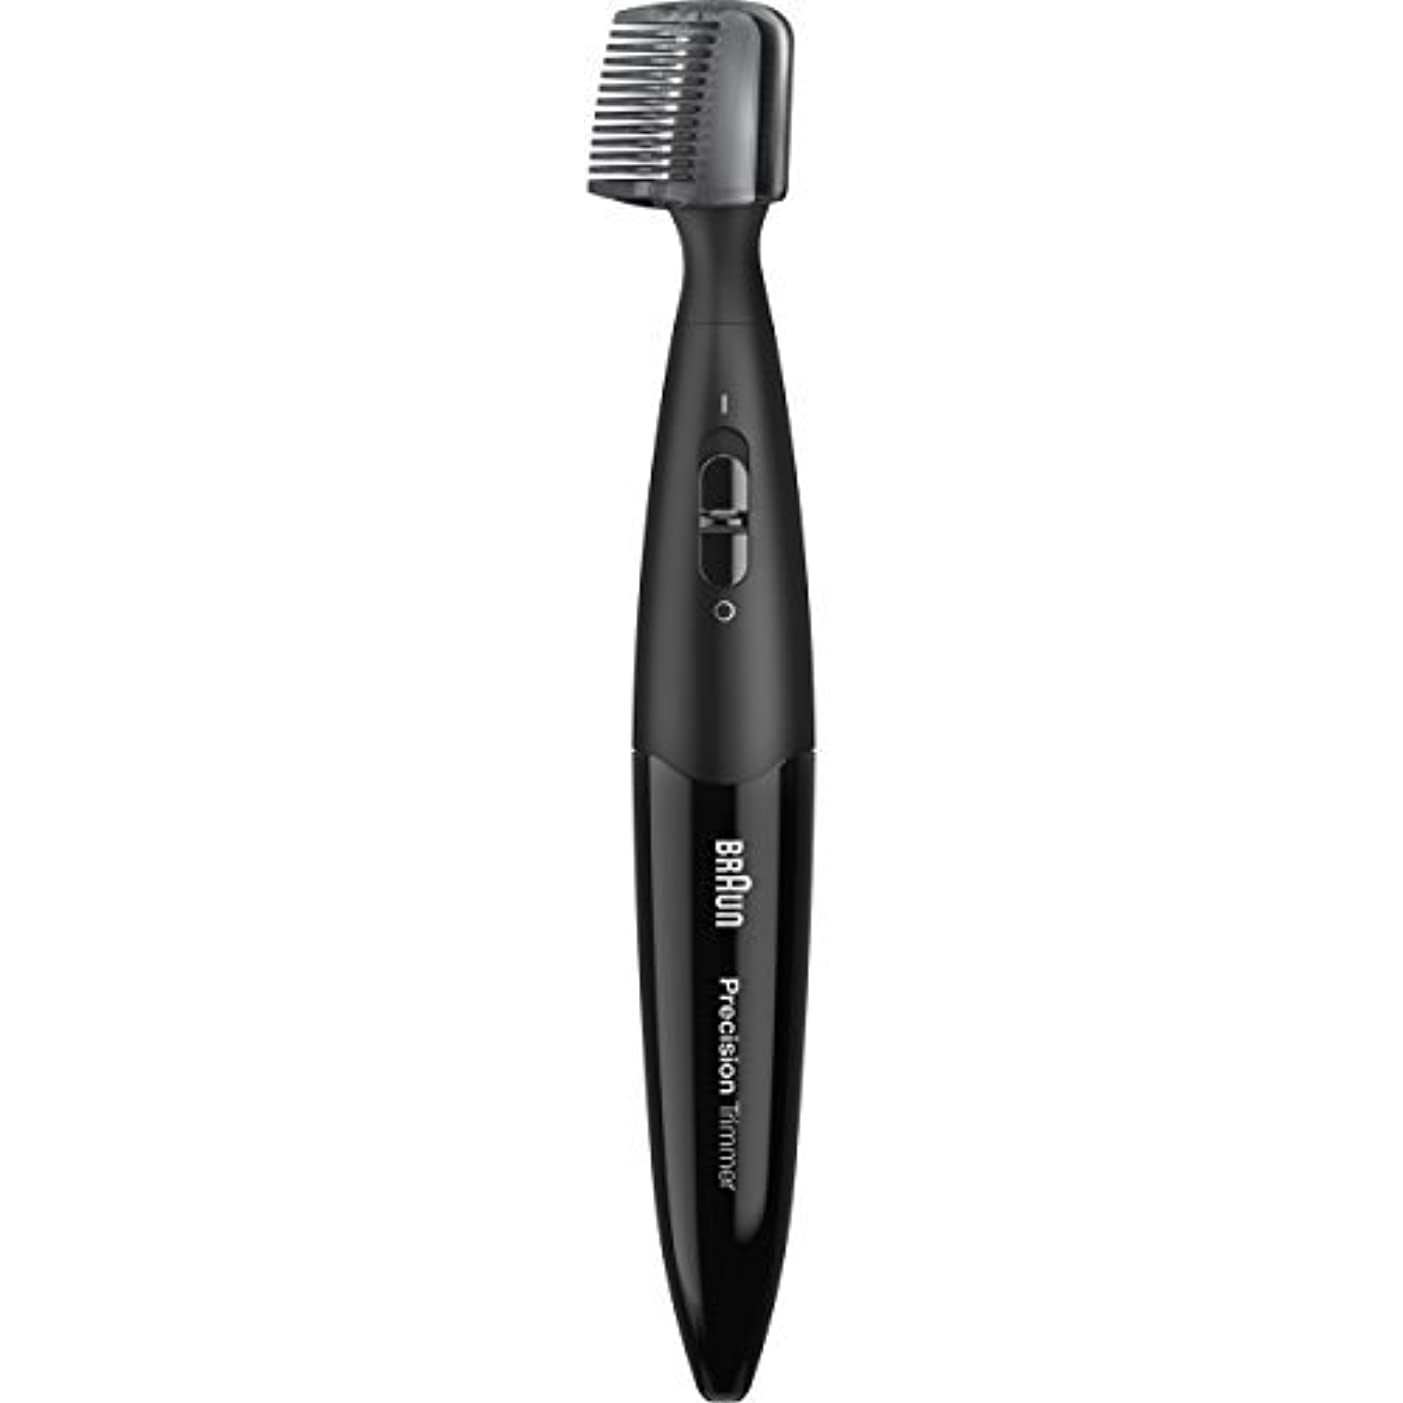 スキー費用目的Braun Precision Trimmer PT5010, Men's Precision Beard, Ear & Nose, Mustache detailer, styler [並行輸入品]